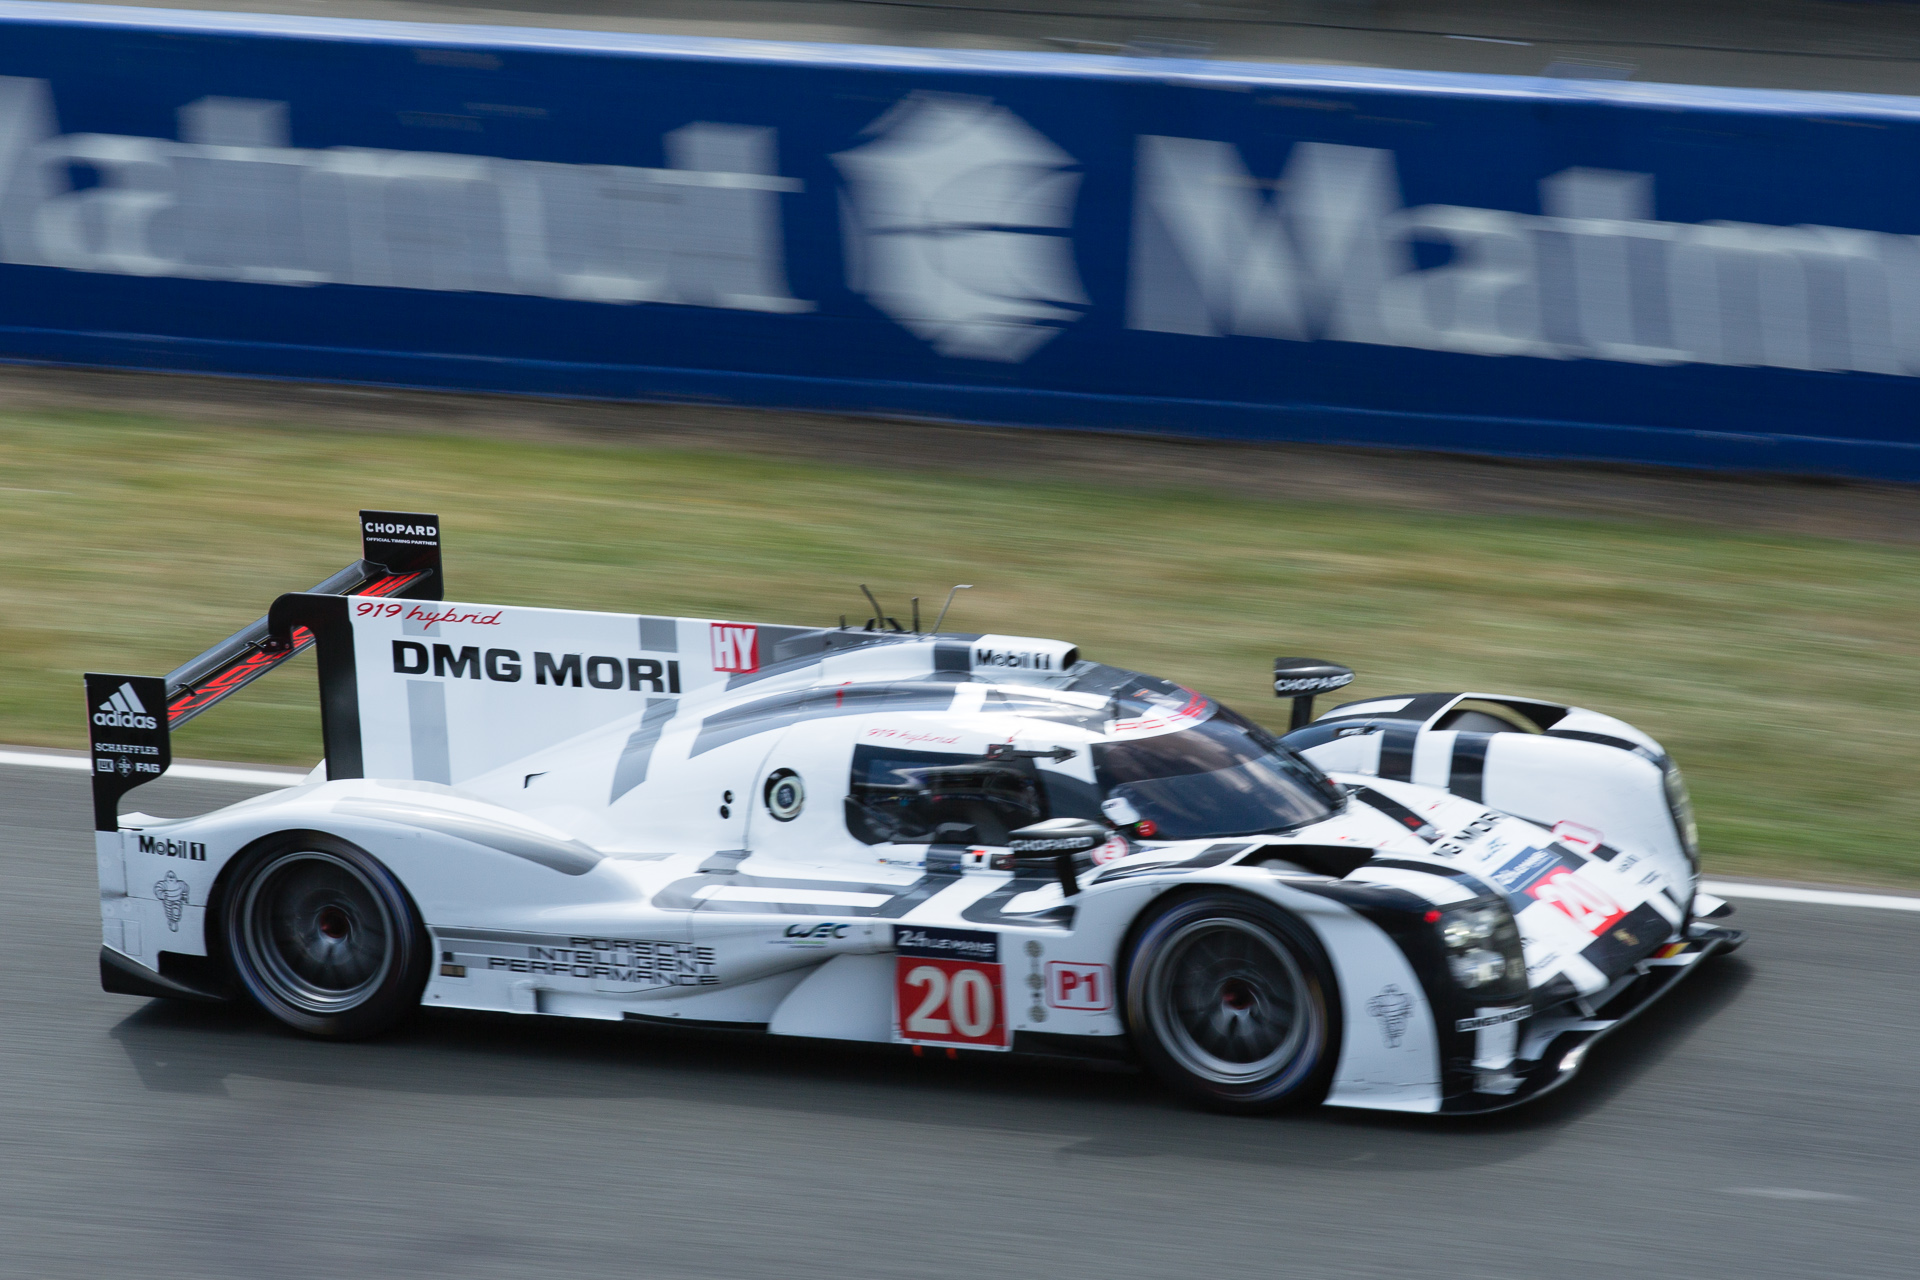 Porsche 919 Hybrid - Wikipedia, the free encyclopedia